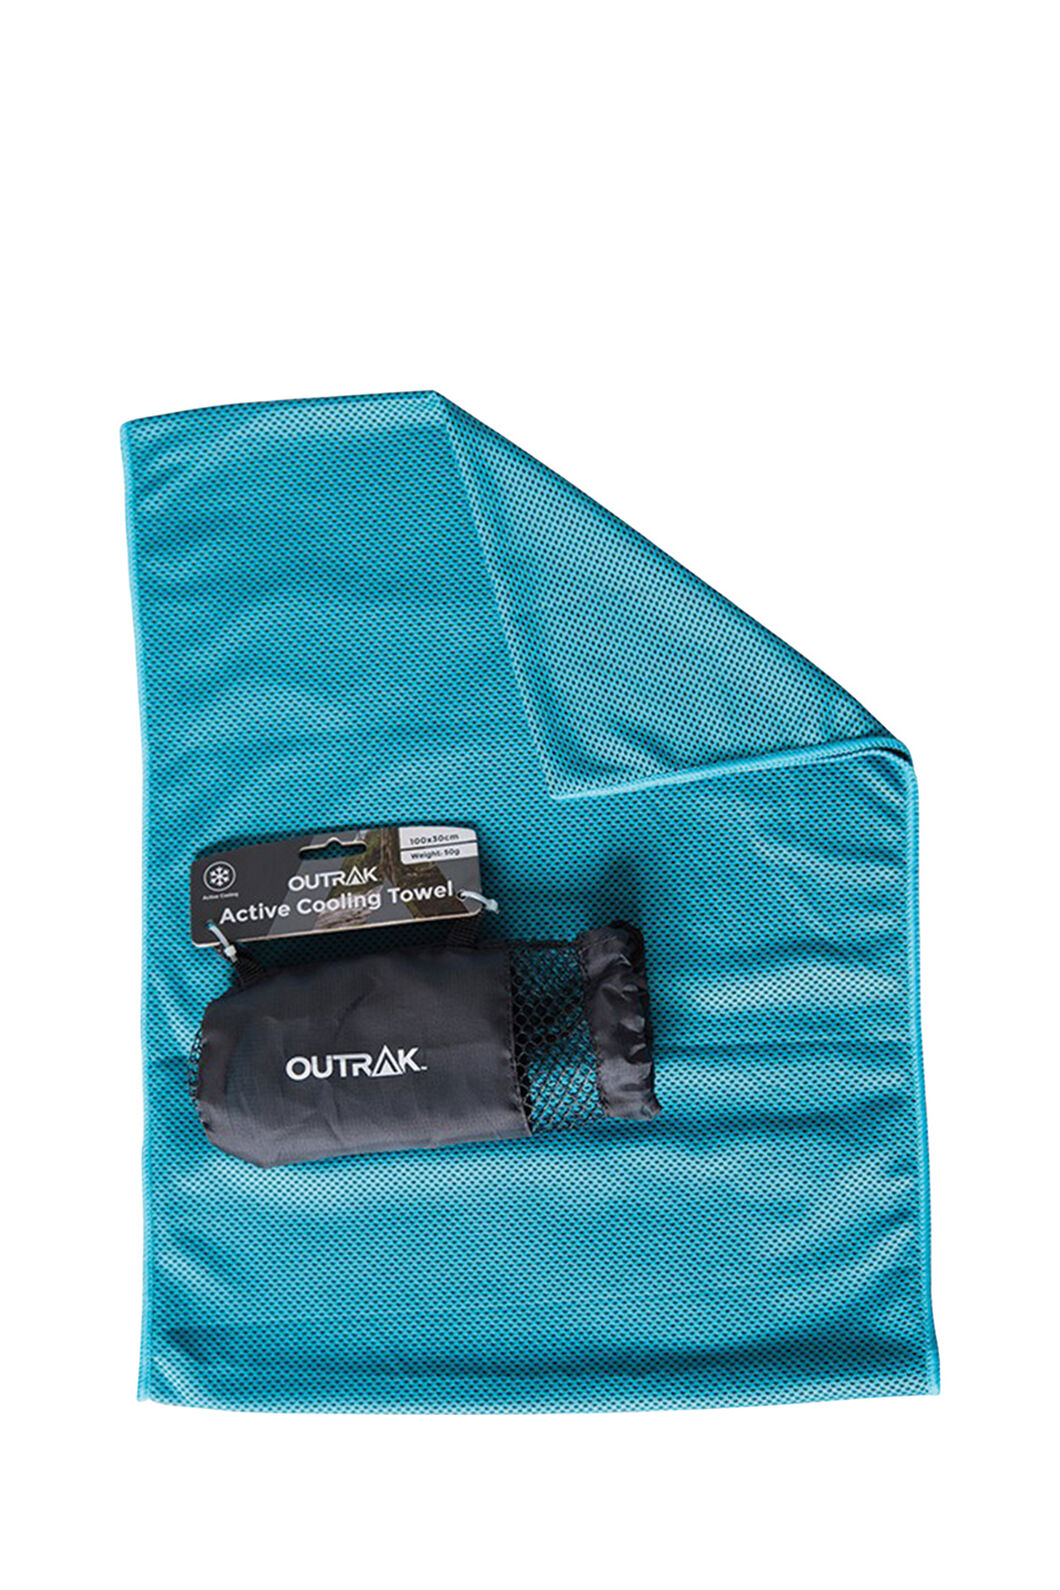 Outrak Active Cooling Towel, None, hi-res